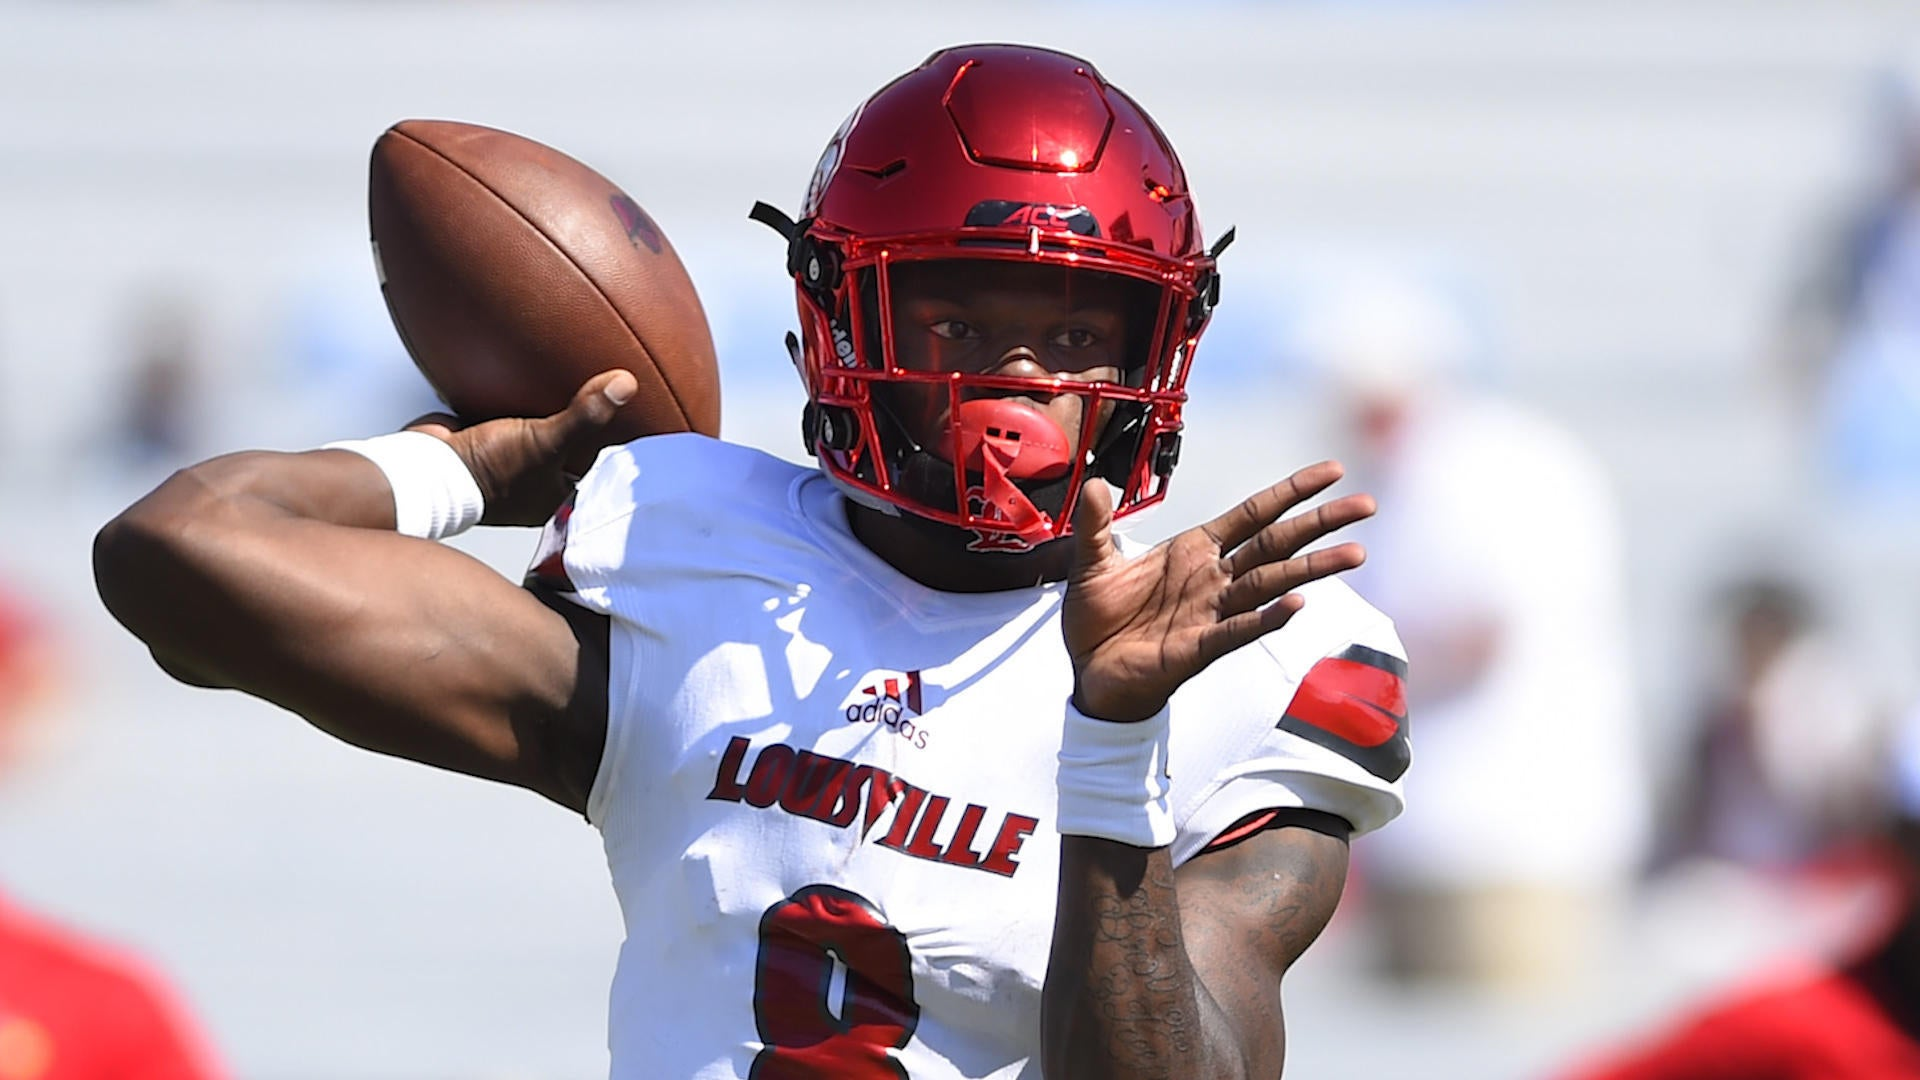 2018 NFL Mock Draft: Lamar Jackson first QB off the board in a bonkers first round